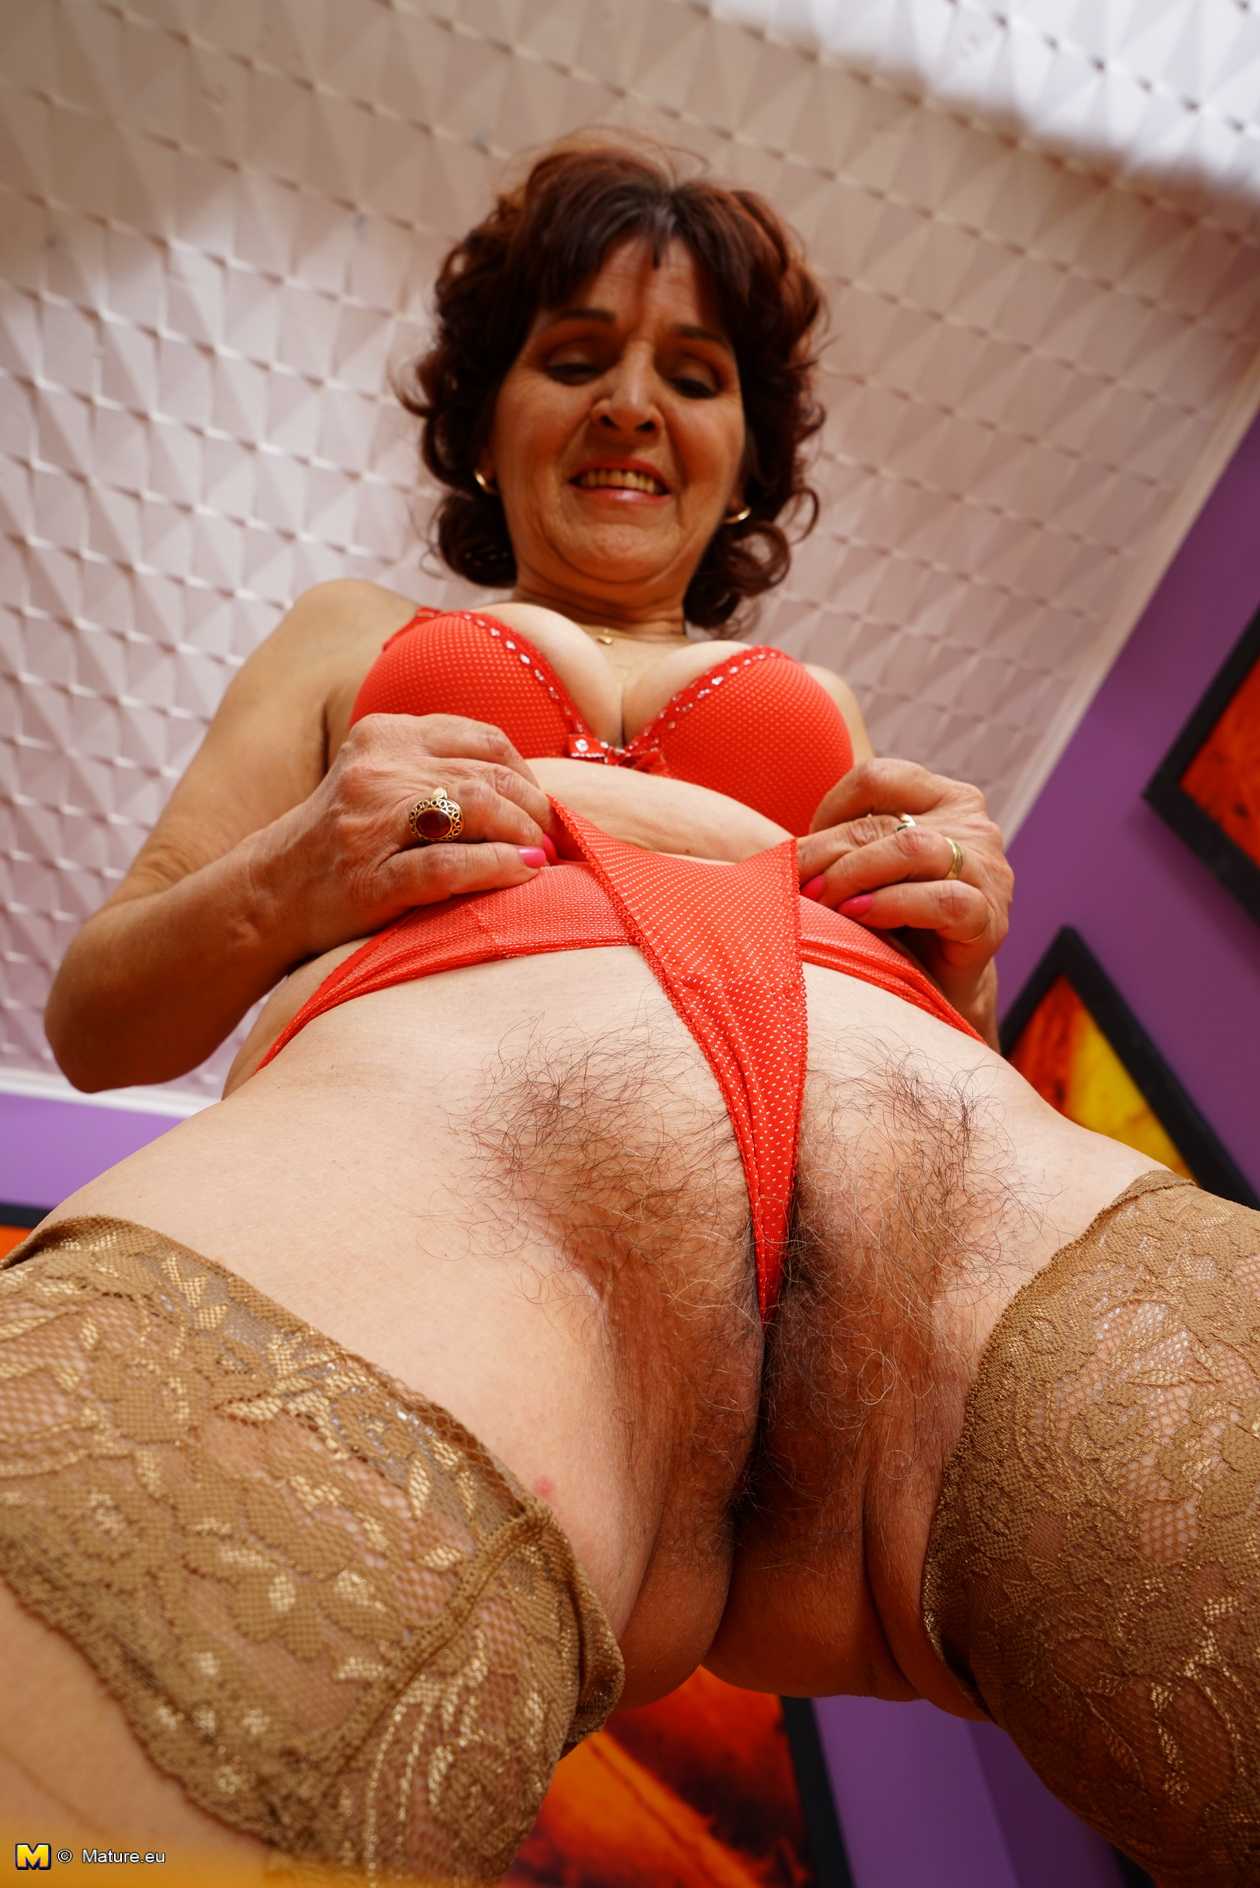 hairy mature lady playing with herself